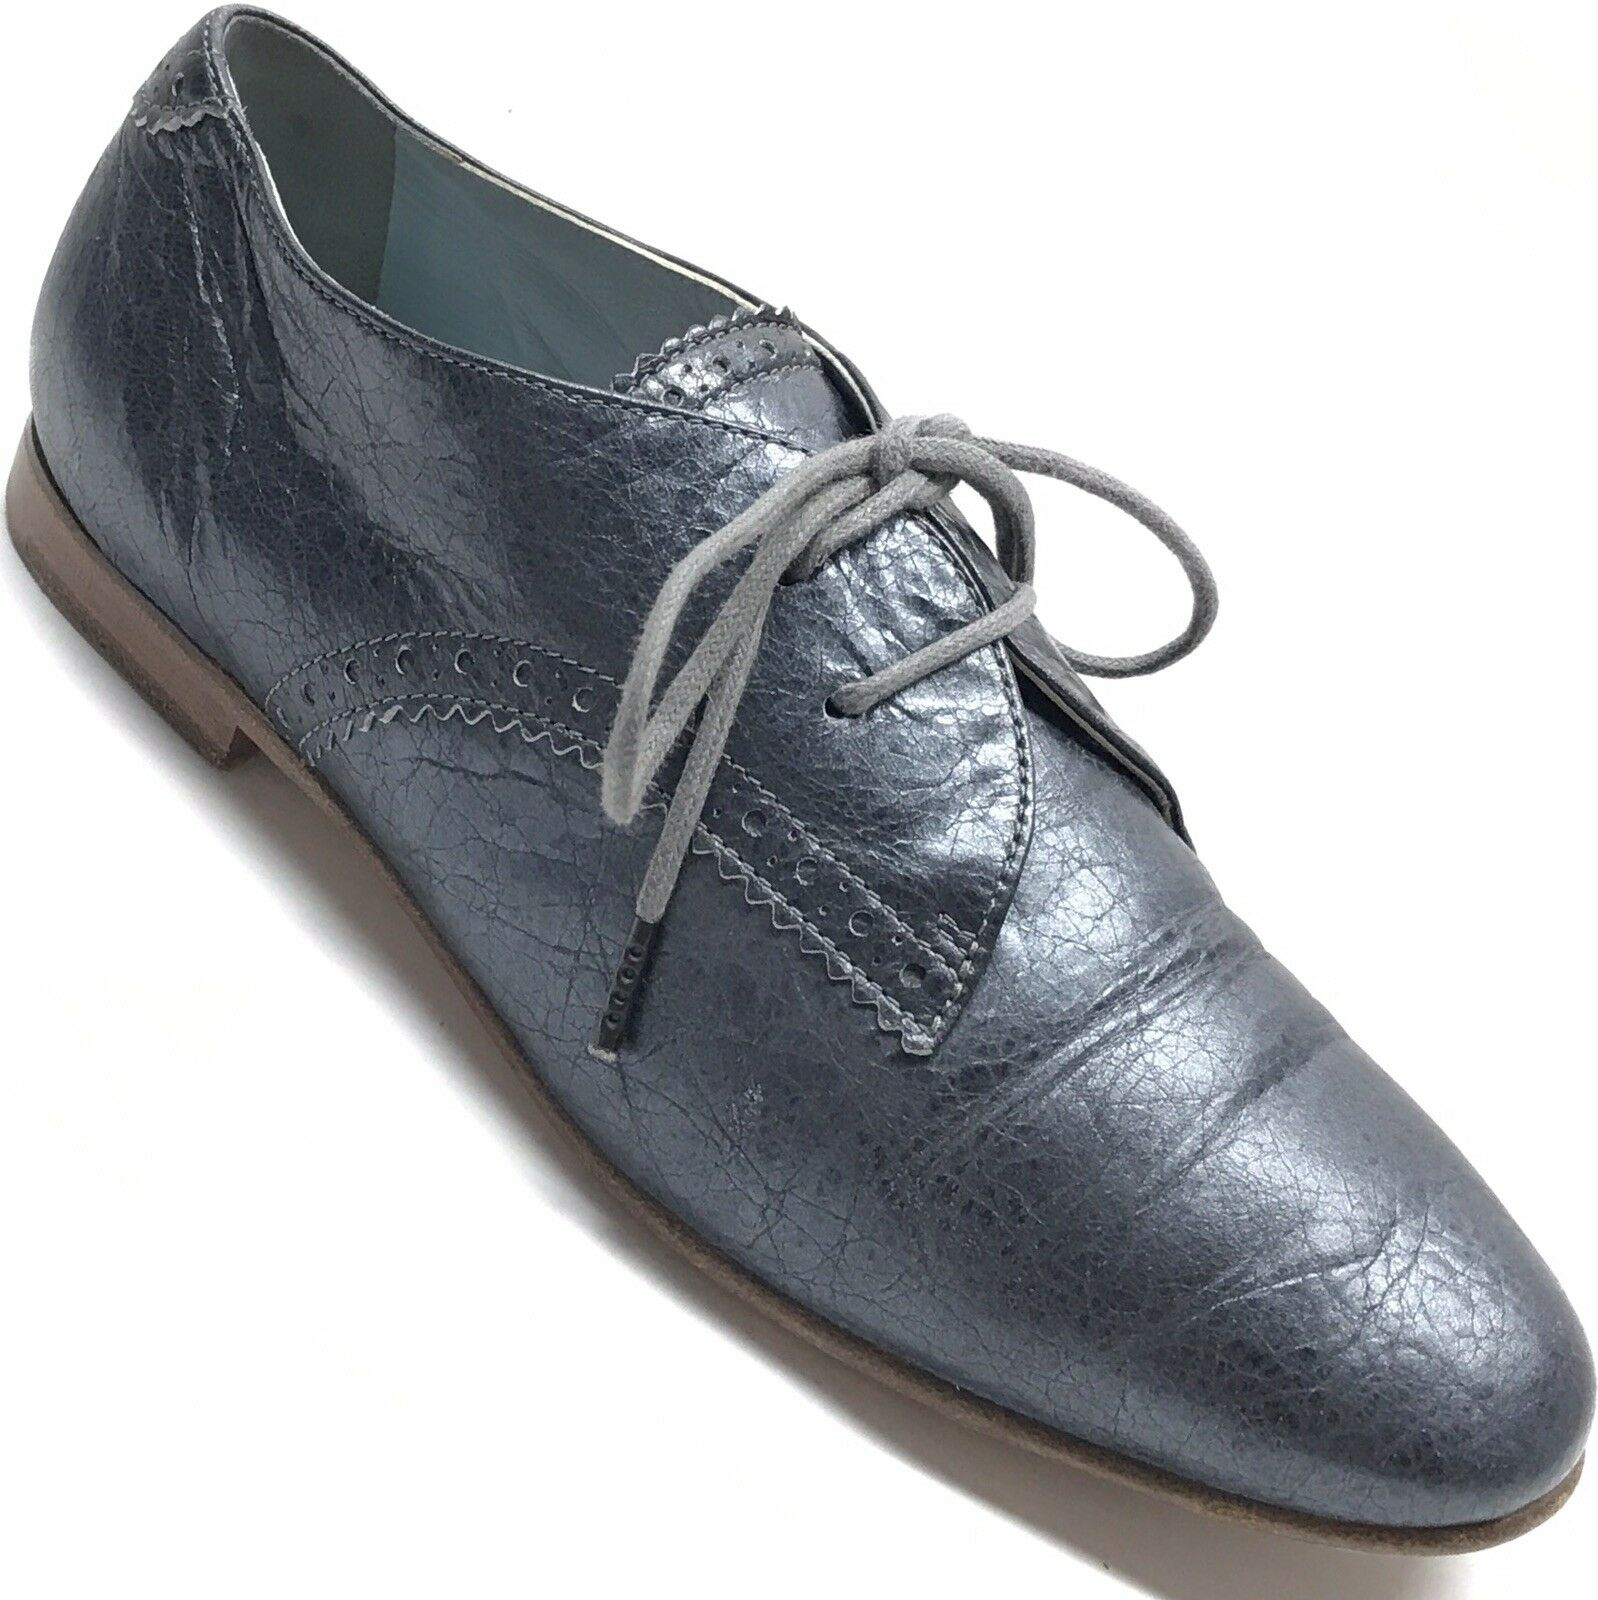 BALENCIAGA Paris Womens Distressed Leather Oxford Lace Up Flat shoes 36 US 6